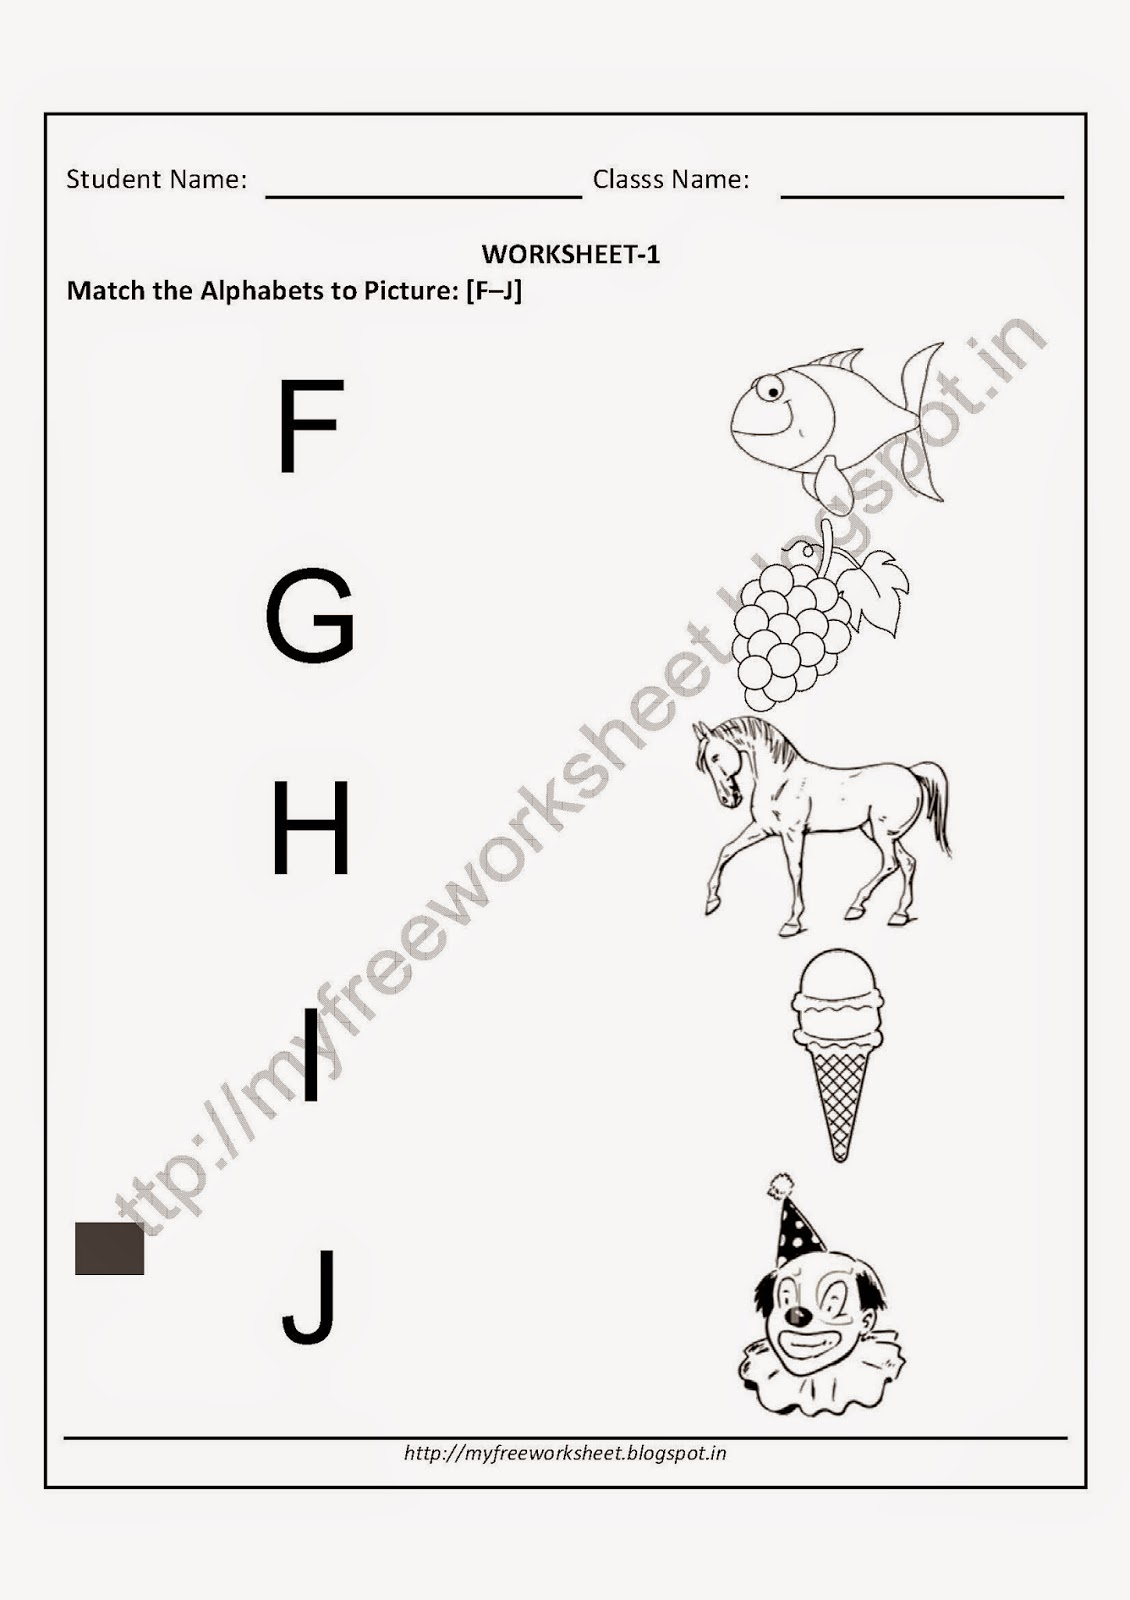 Free Printable Worksheets For Nursery Match The Picture To Alphabets F J Worksheets My Free